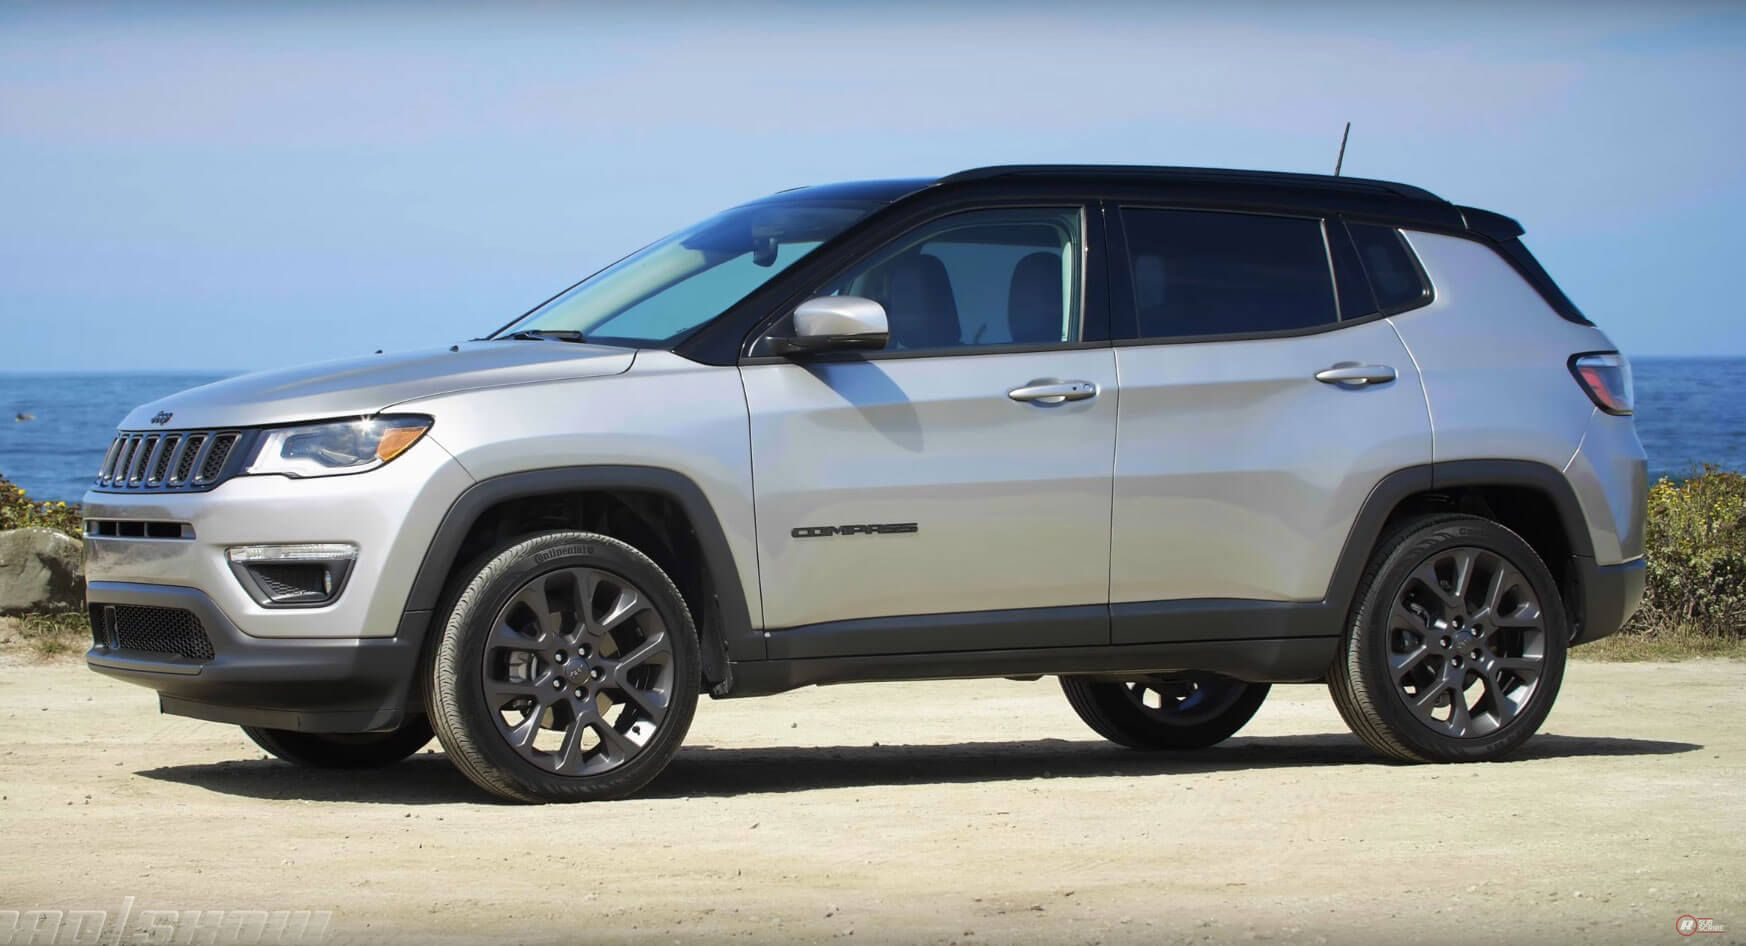 Should You Want A 2019 Jeep Compass In Your Life? (Spoiler